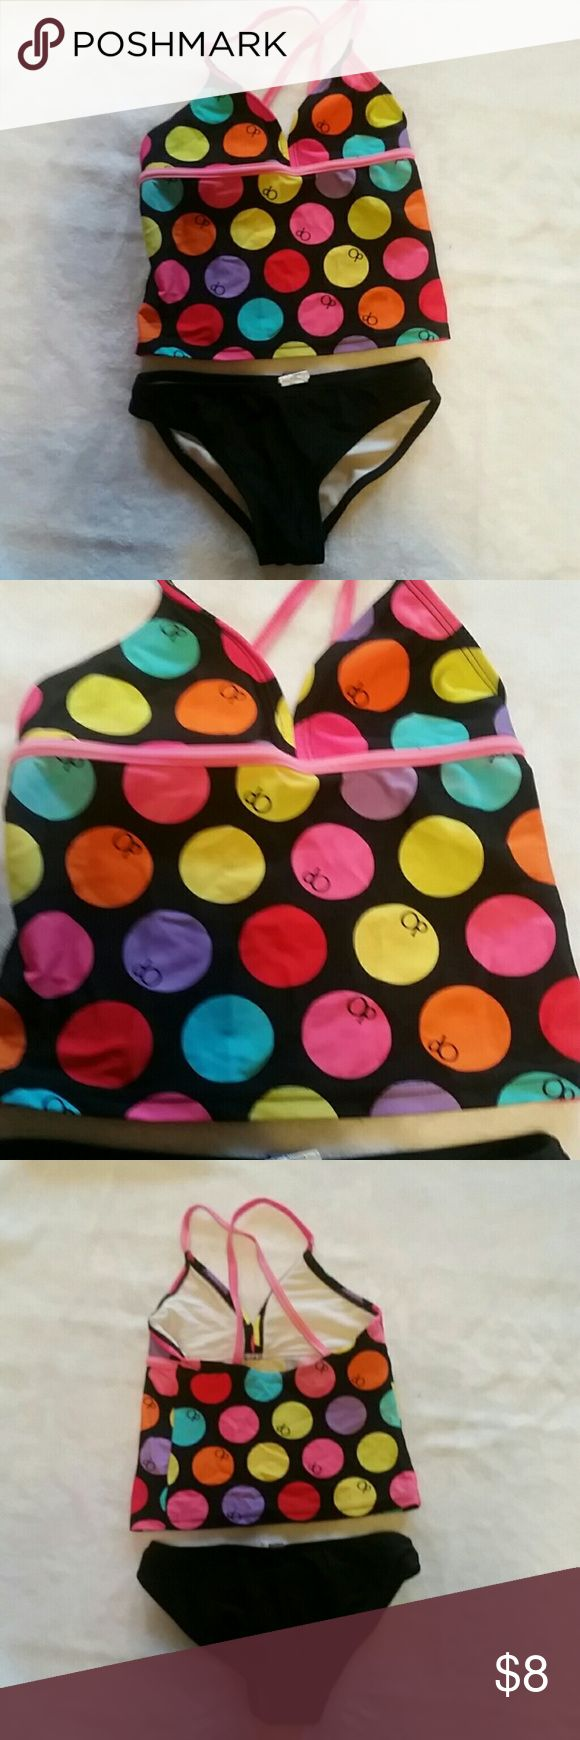 4/5 swimsuit Absolutely adorable 2 piece swimsuit. Solid black bottoms, top is black with multicolored polka dots. Such a cute big girl bikini, without showing much. Makes your little one feel like a big girl. No rips, holes, stains or tears. Swim Bikinis